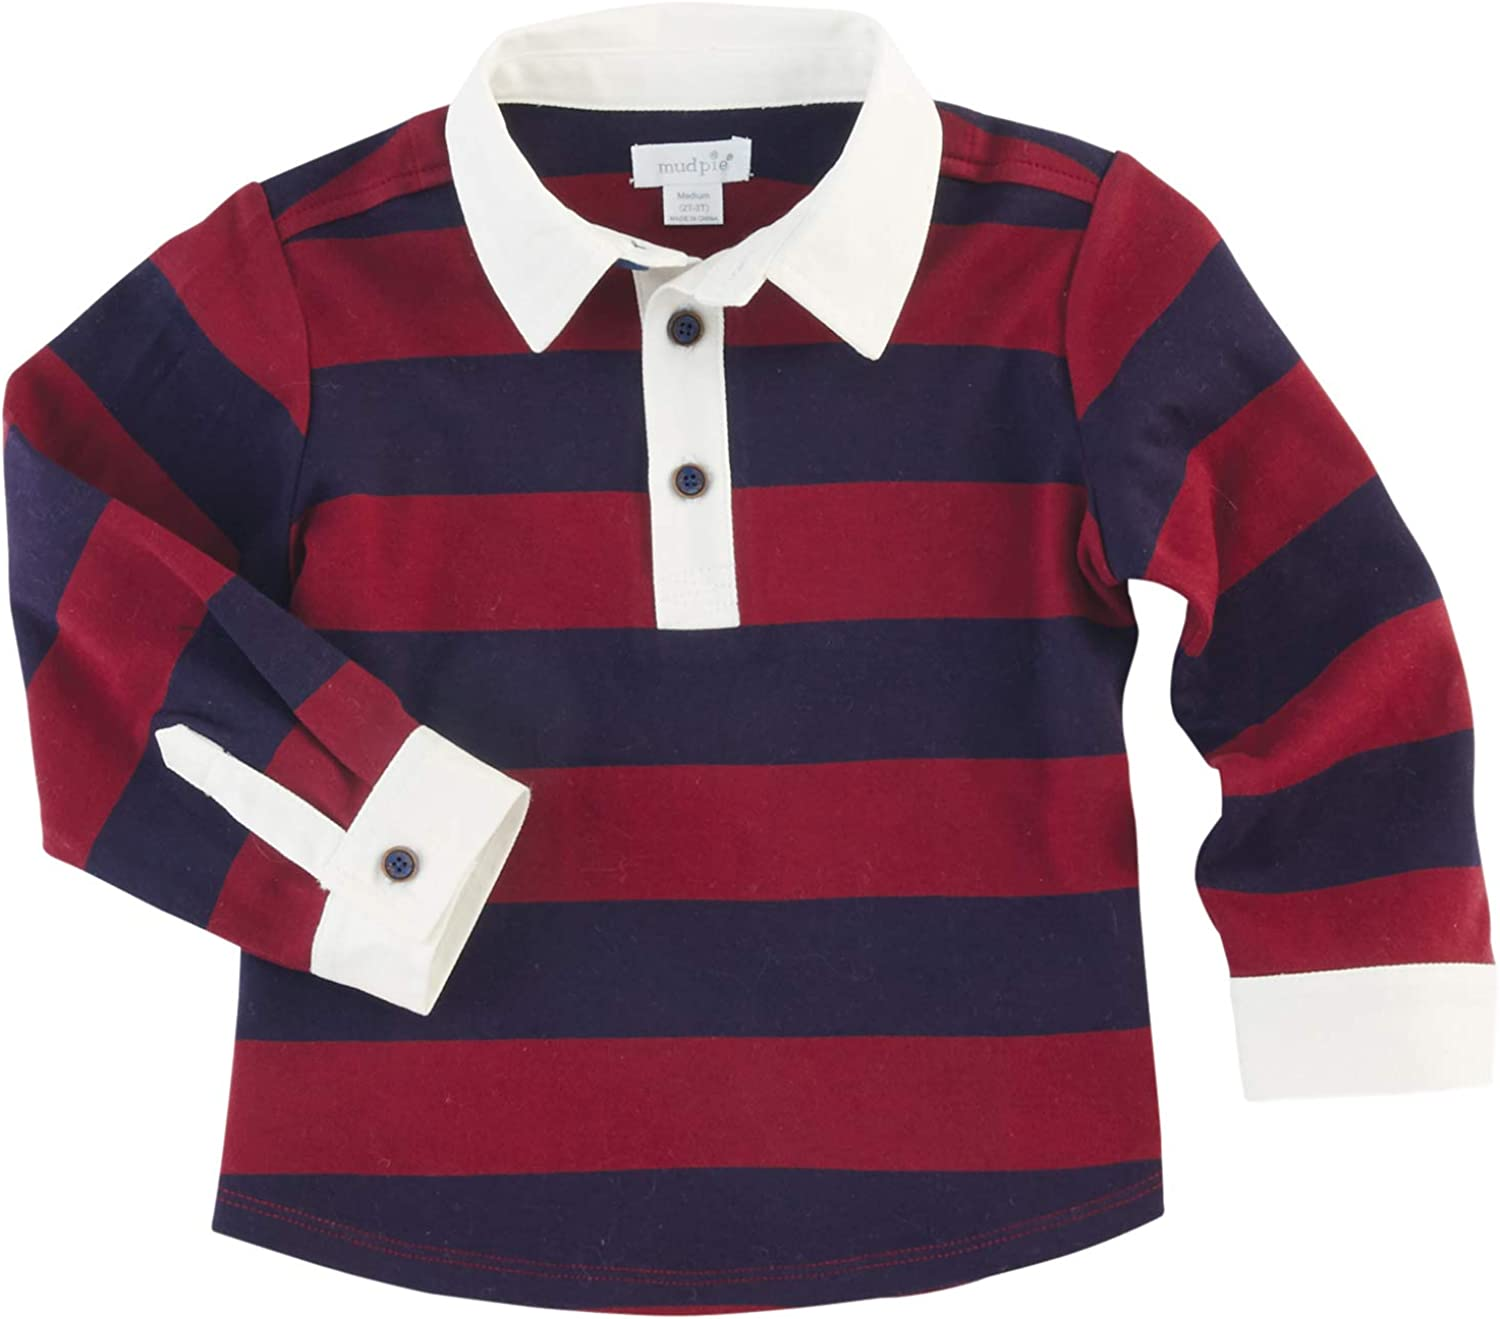 Mud Pie Boys Classic RUGBY SHIRTS S, Navy and Maroon, 12-18 Months US